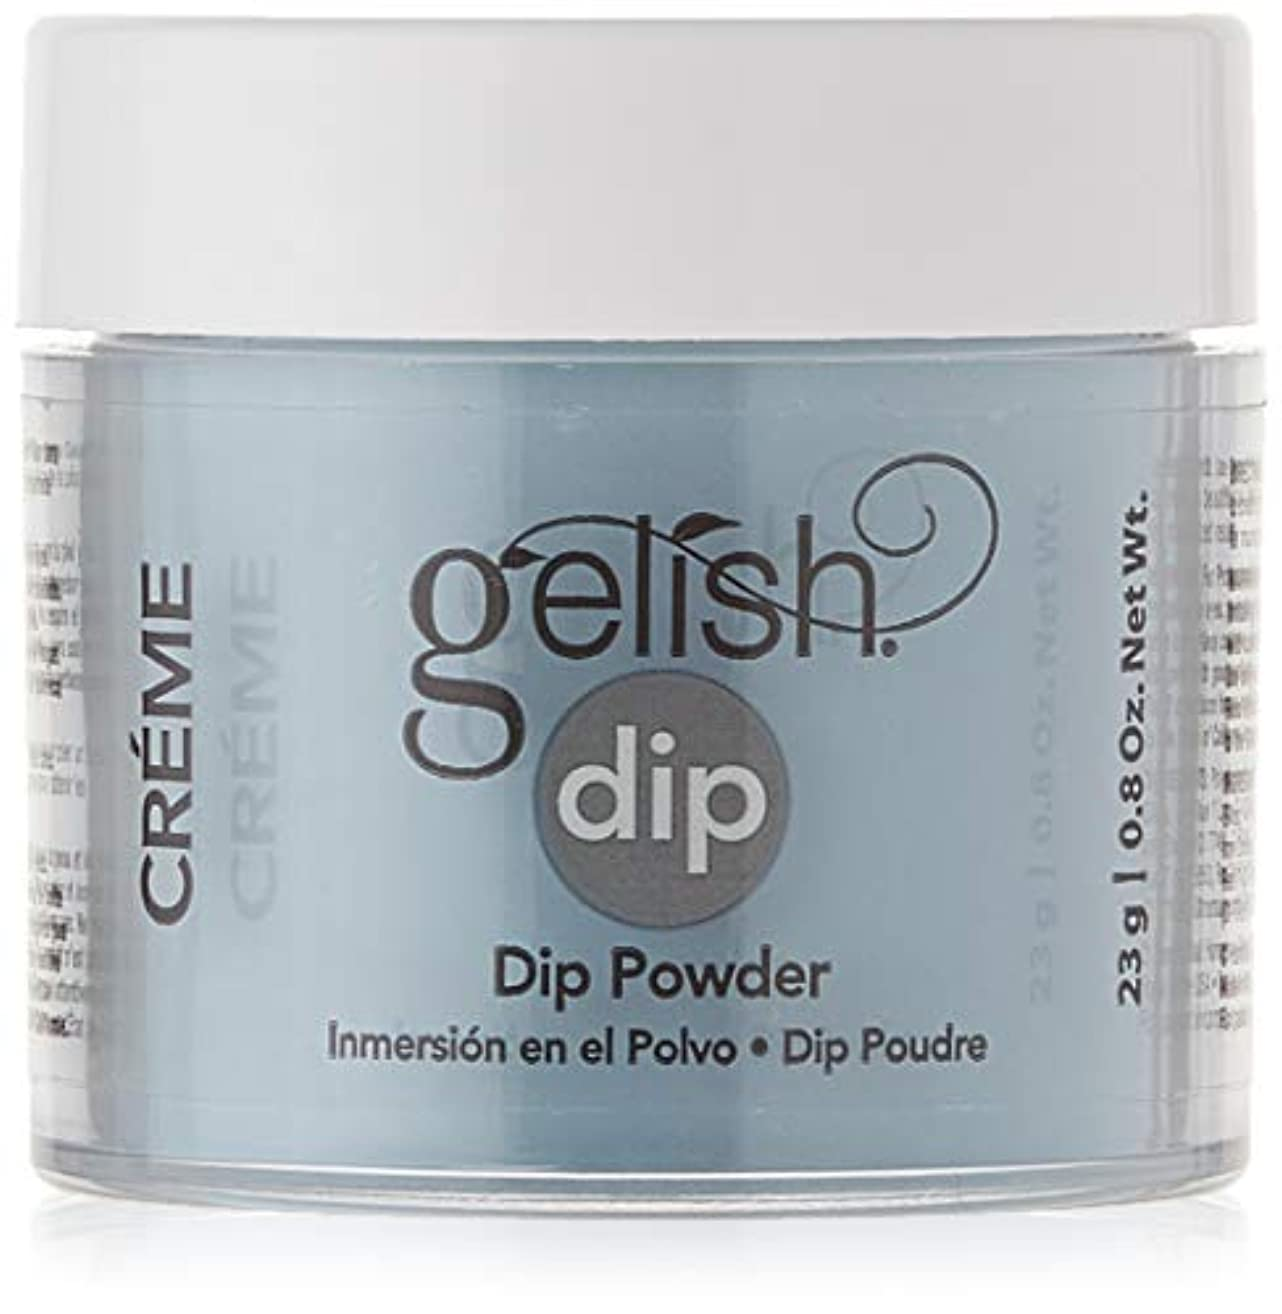 Harmony Gelish - Acrylic Dip Powder - My Favorite Accessory - 23g / 0.8oz